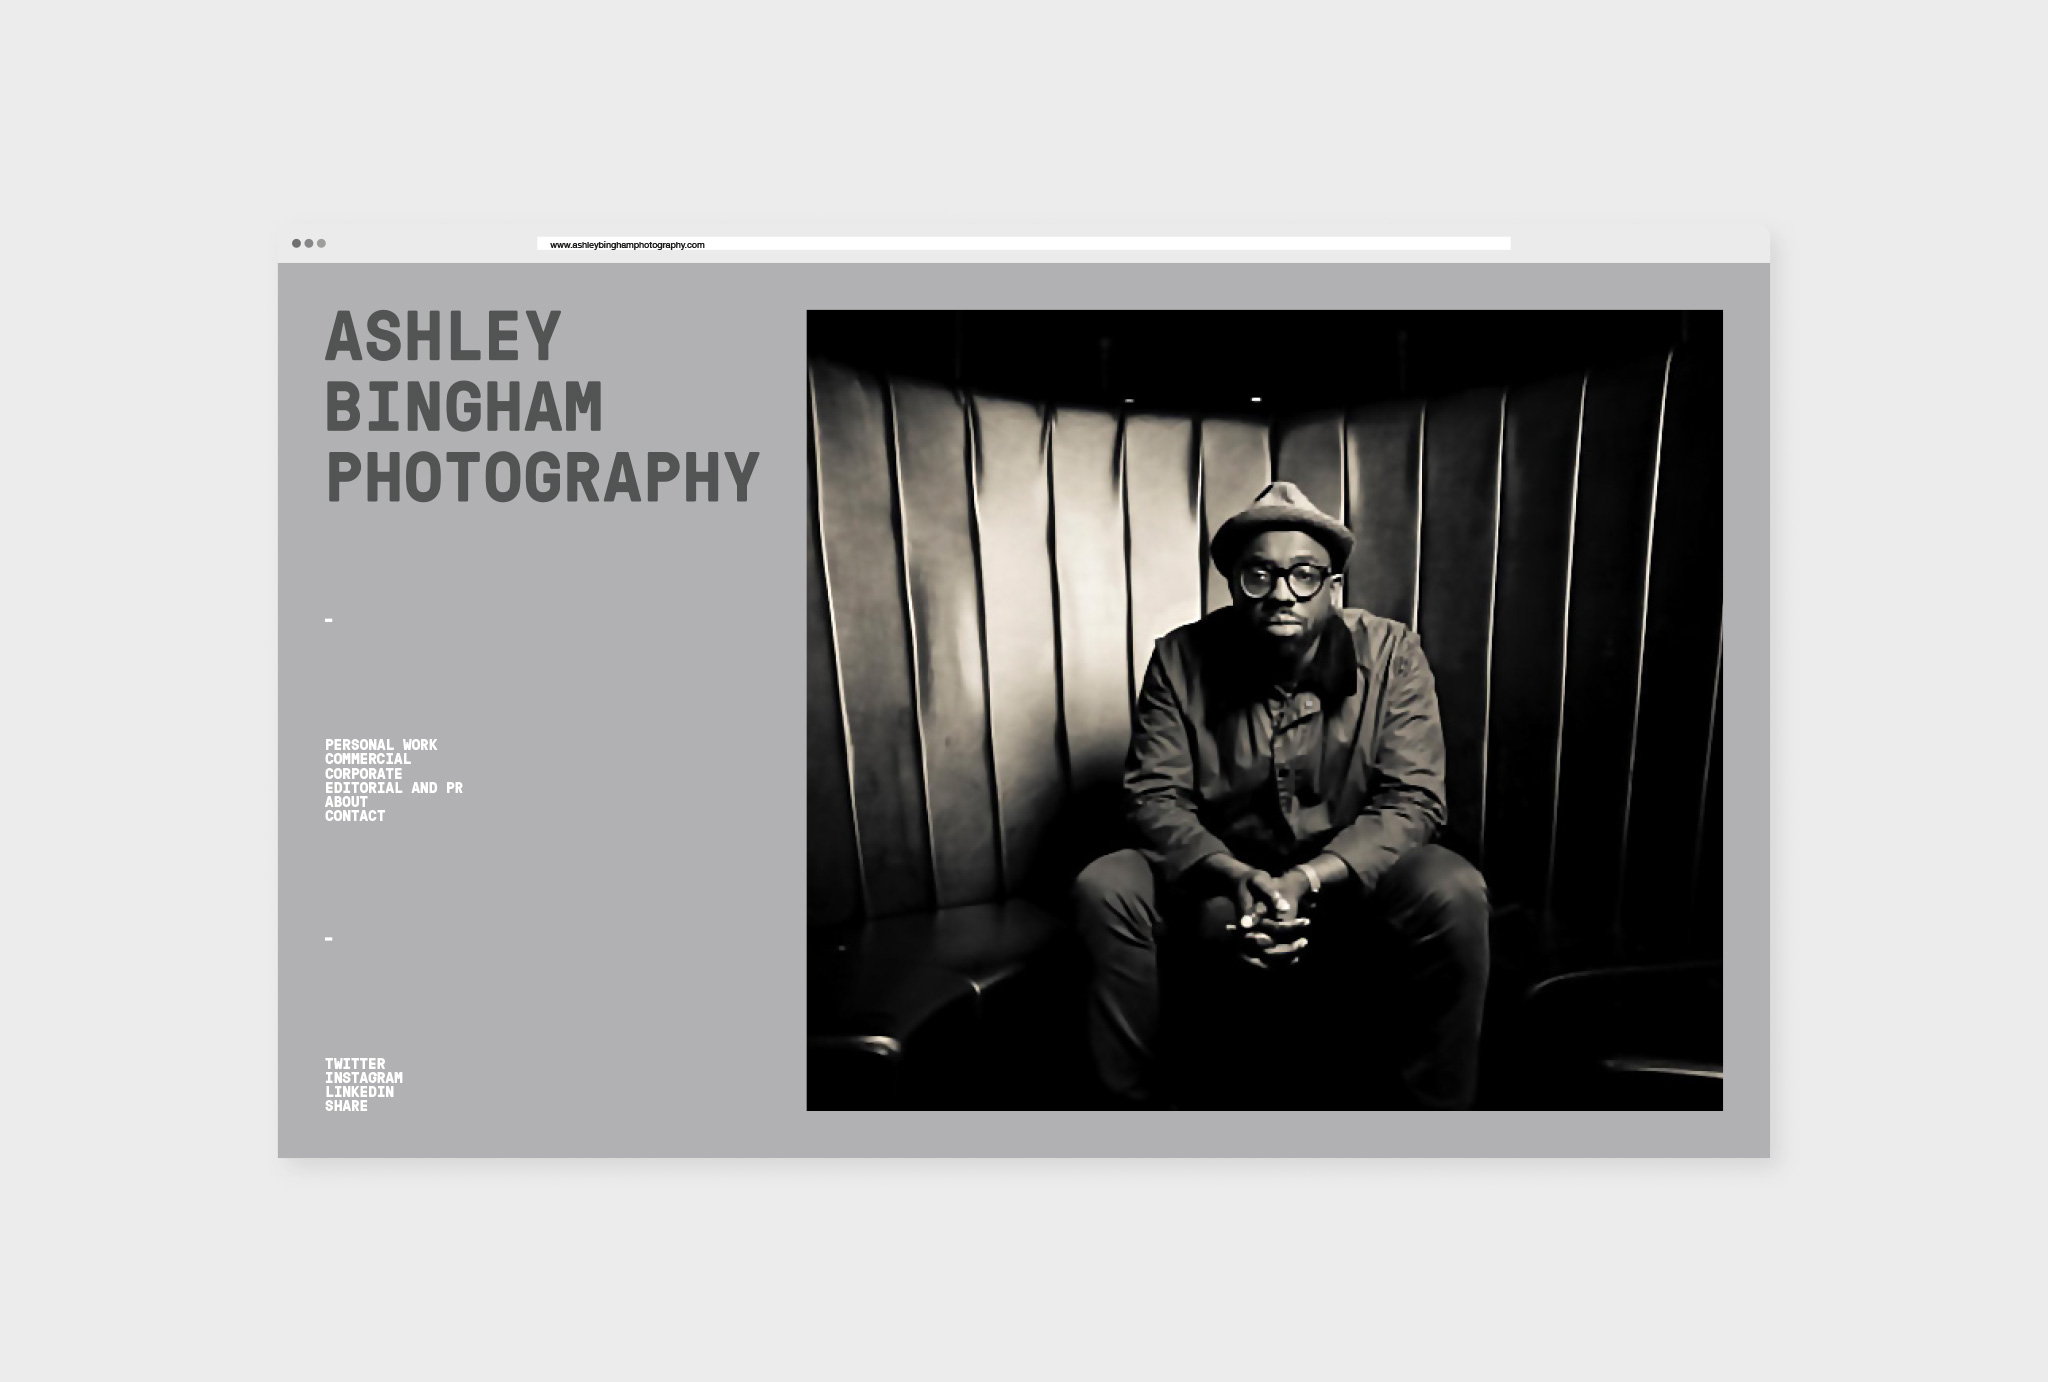 website design for 'ASHLEY BINGHAM PHOTOGRAPHY' in different grey shades